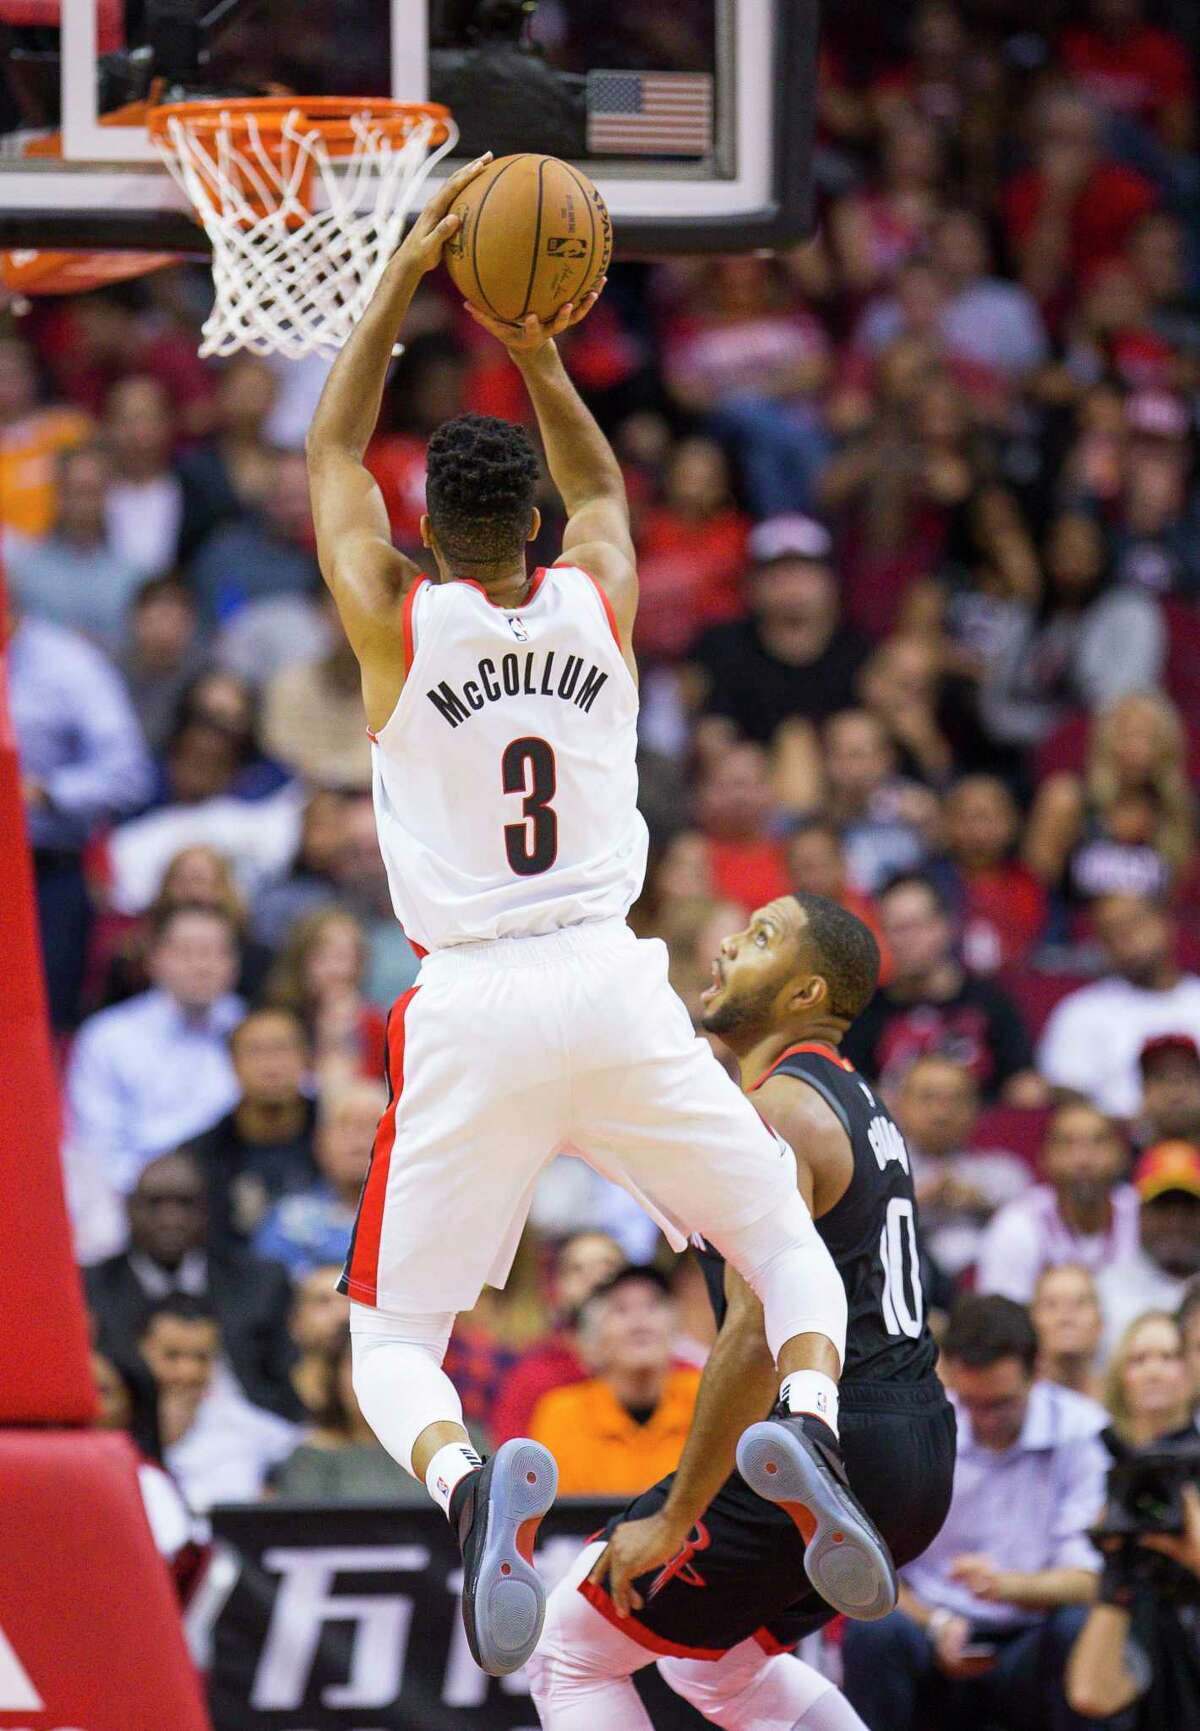 Portland Trail Blazers guard CJ McCollum (3) shoots over Houston Rockets guard Eric Gordon (10) during the first half of an NBA game, Tuesday, Oct. 30, 2018, at Toyota Center in Houston.